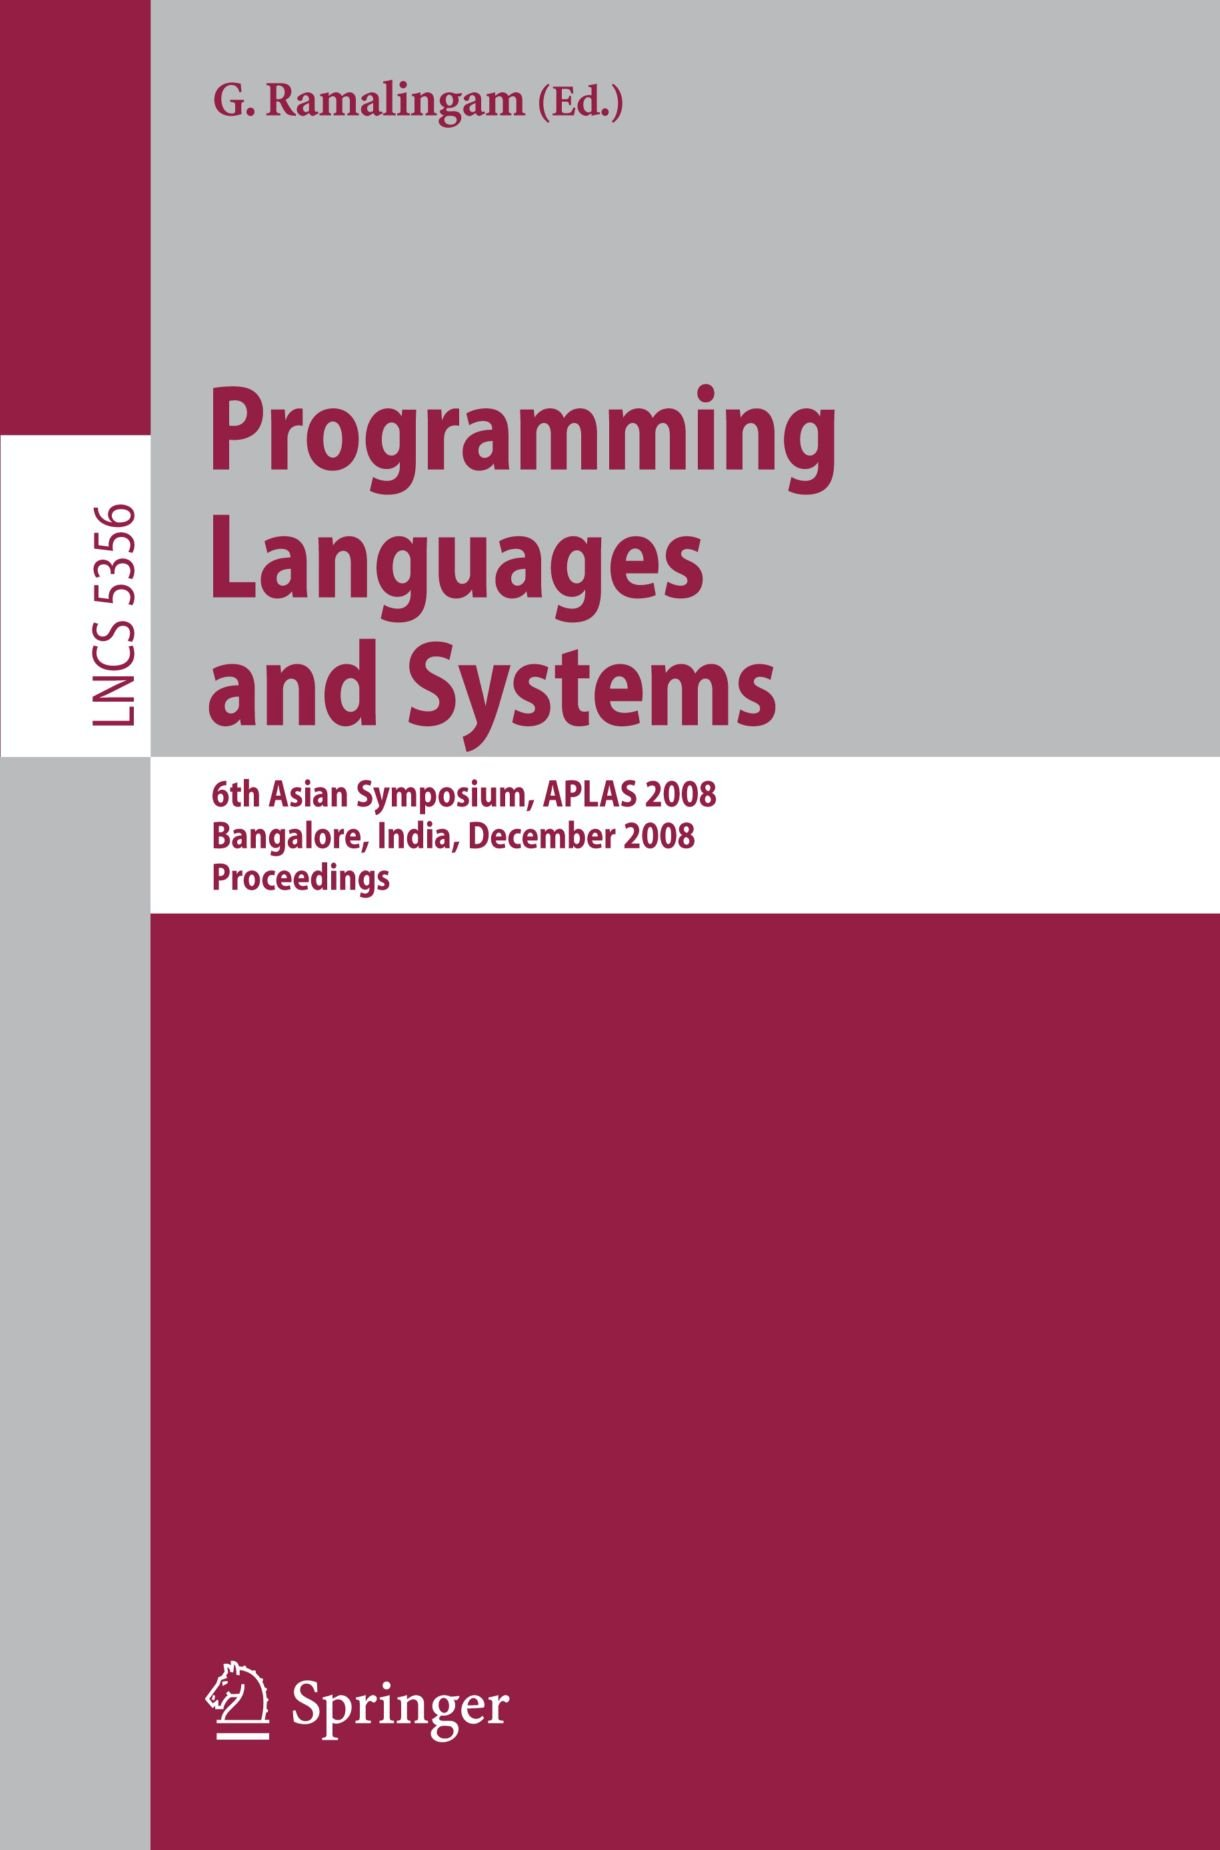 Programming Languages and Systems: 6th Asian Symposium, APLAS 2008, Bangalore, India, December 9-11, 2008, Proceedings (Lecture Notes in Computer Science) by Brand: Springer